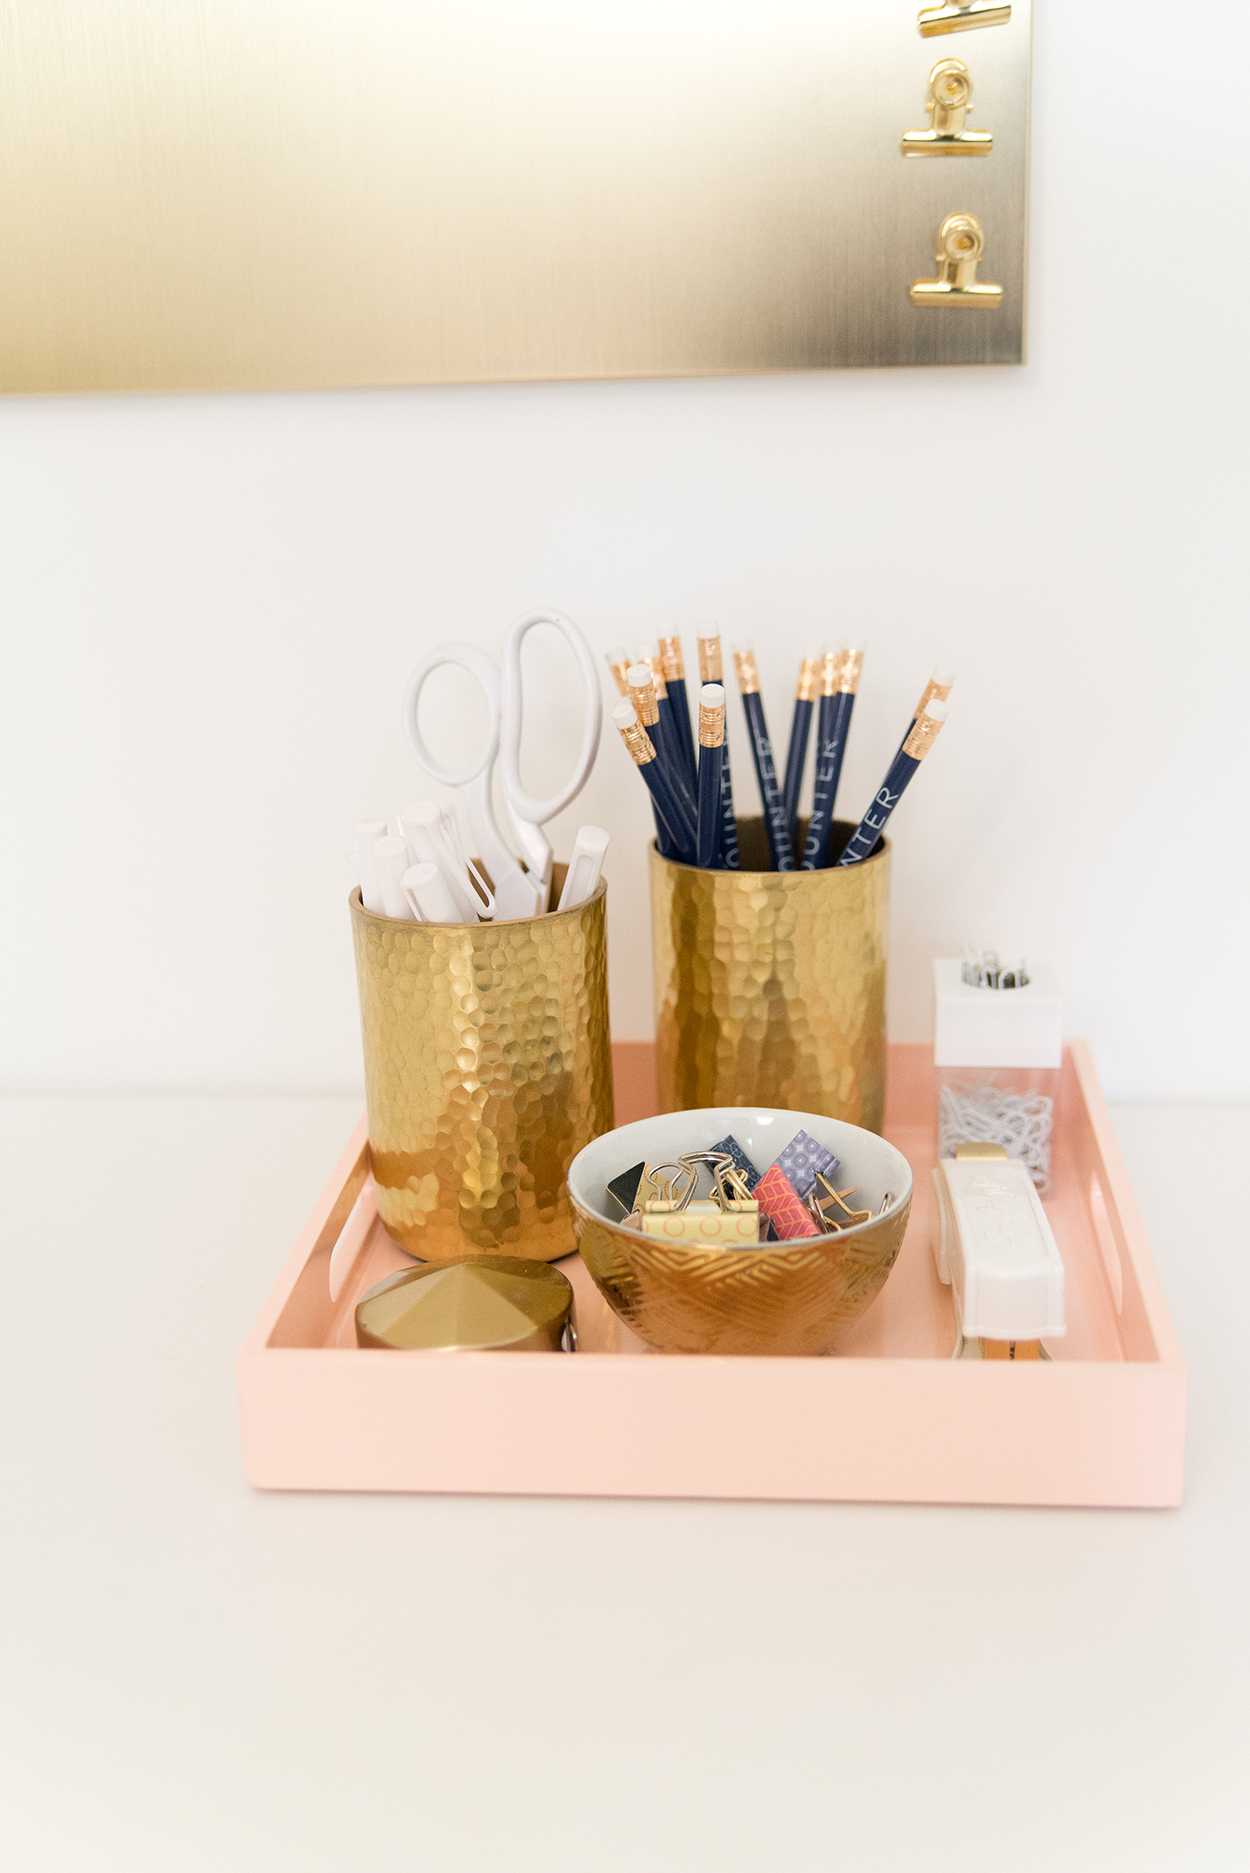 a pink tray holding a gold bowl of clips, and two gold cups holding pencils and scissors